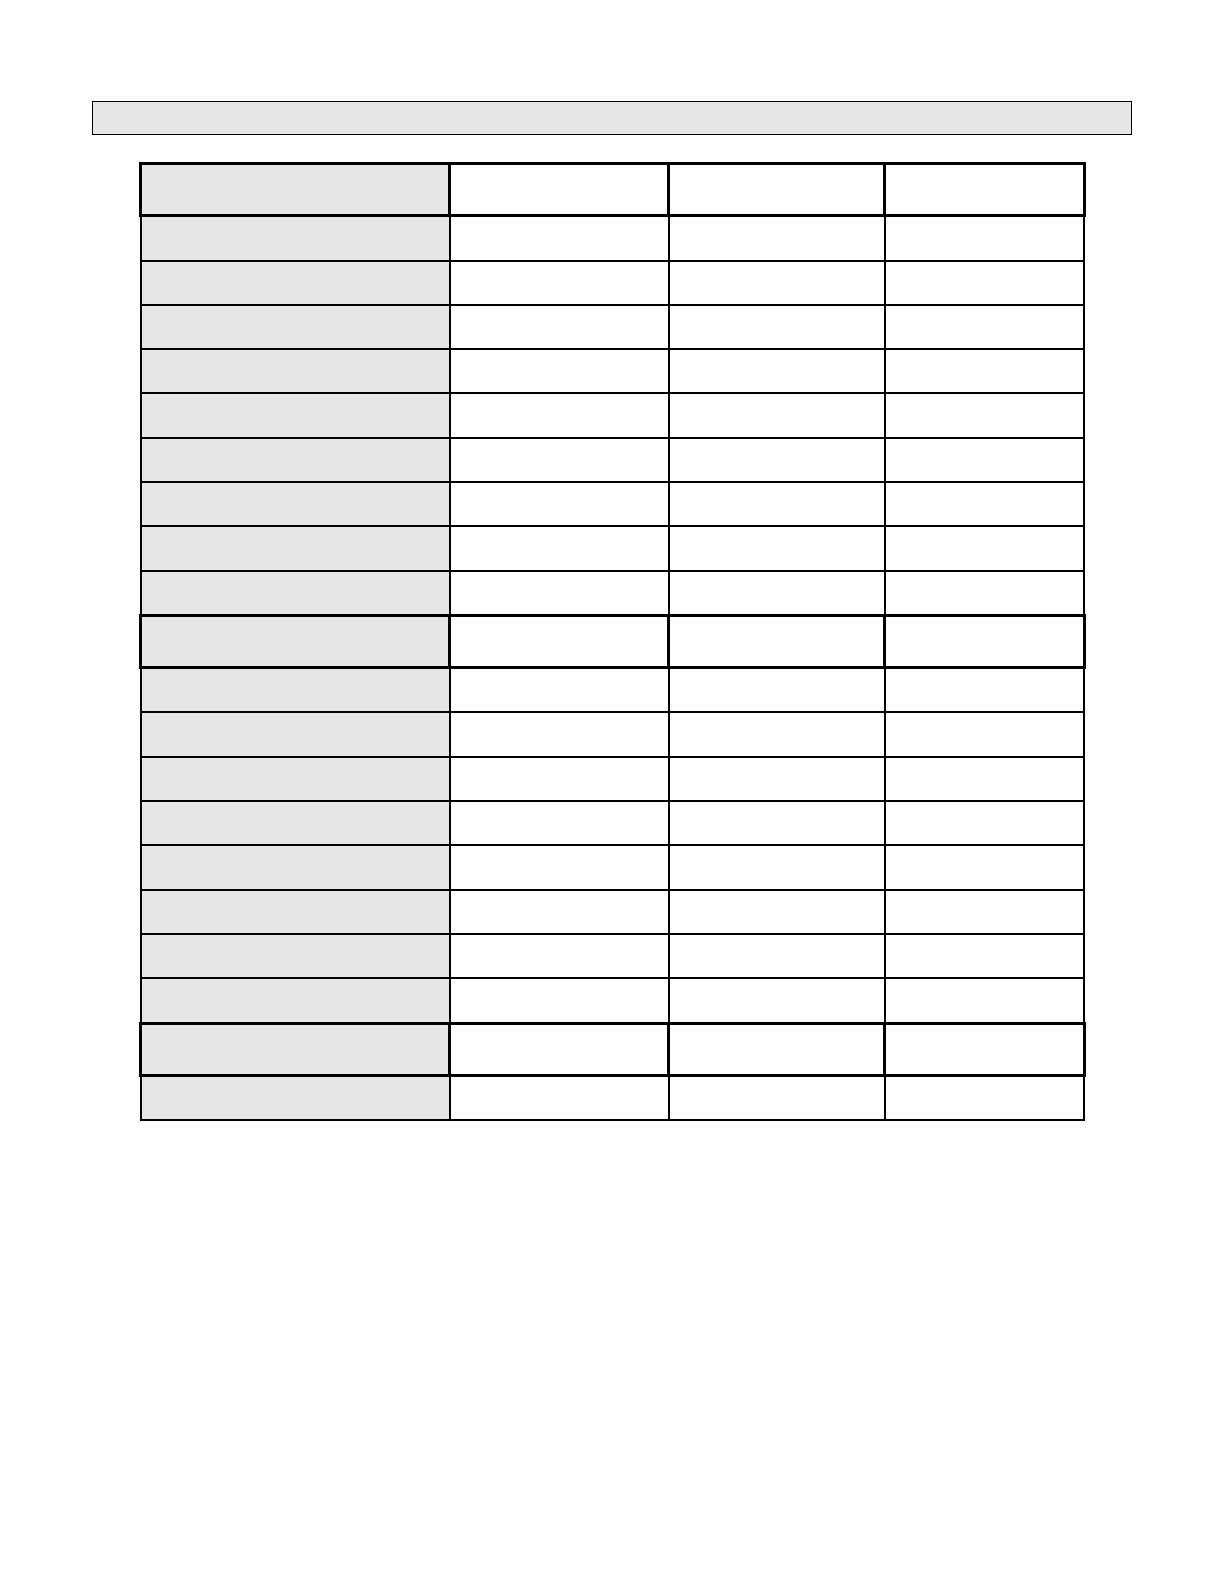 picture relating to Printable Score Sheet referred to as Blank Mille Bornes Ranking Sheet Totally free Obtain